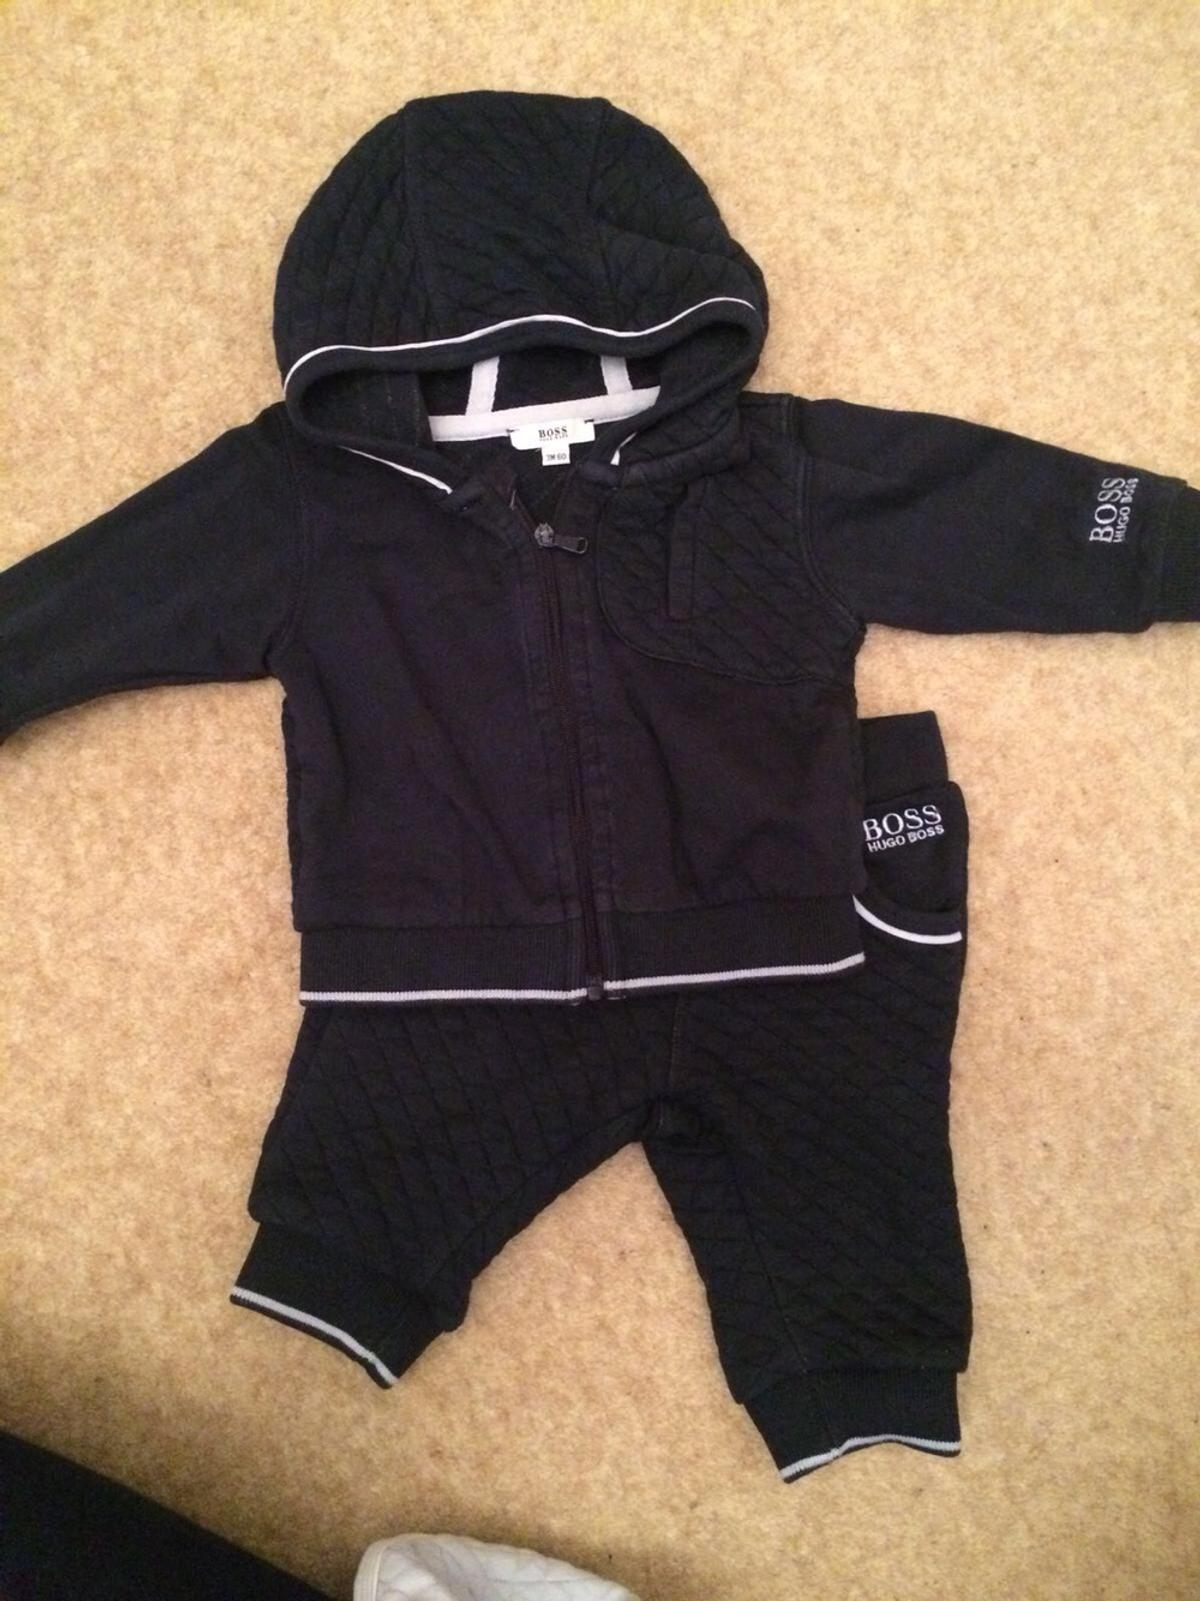 b6eae6281 Hugo Boss Babies Track Suit in The Bonners for £10.00 for sale - Shpock